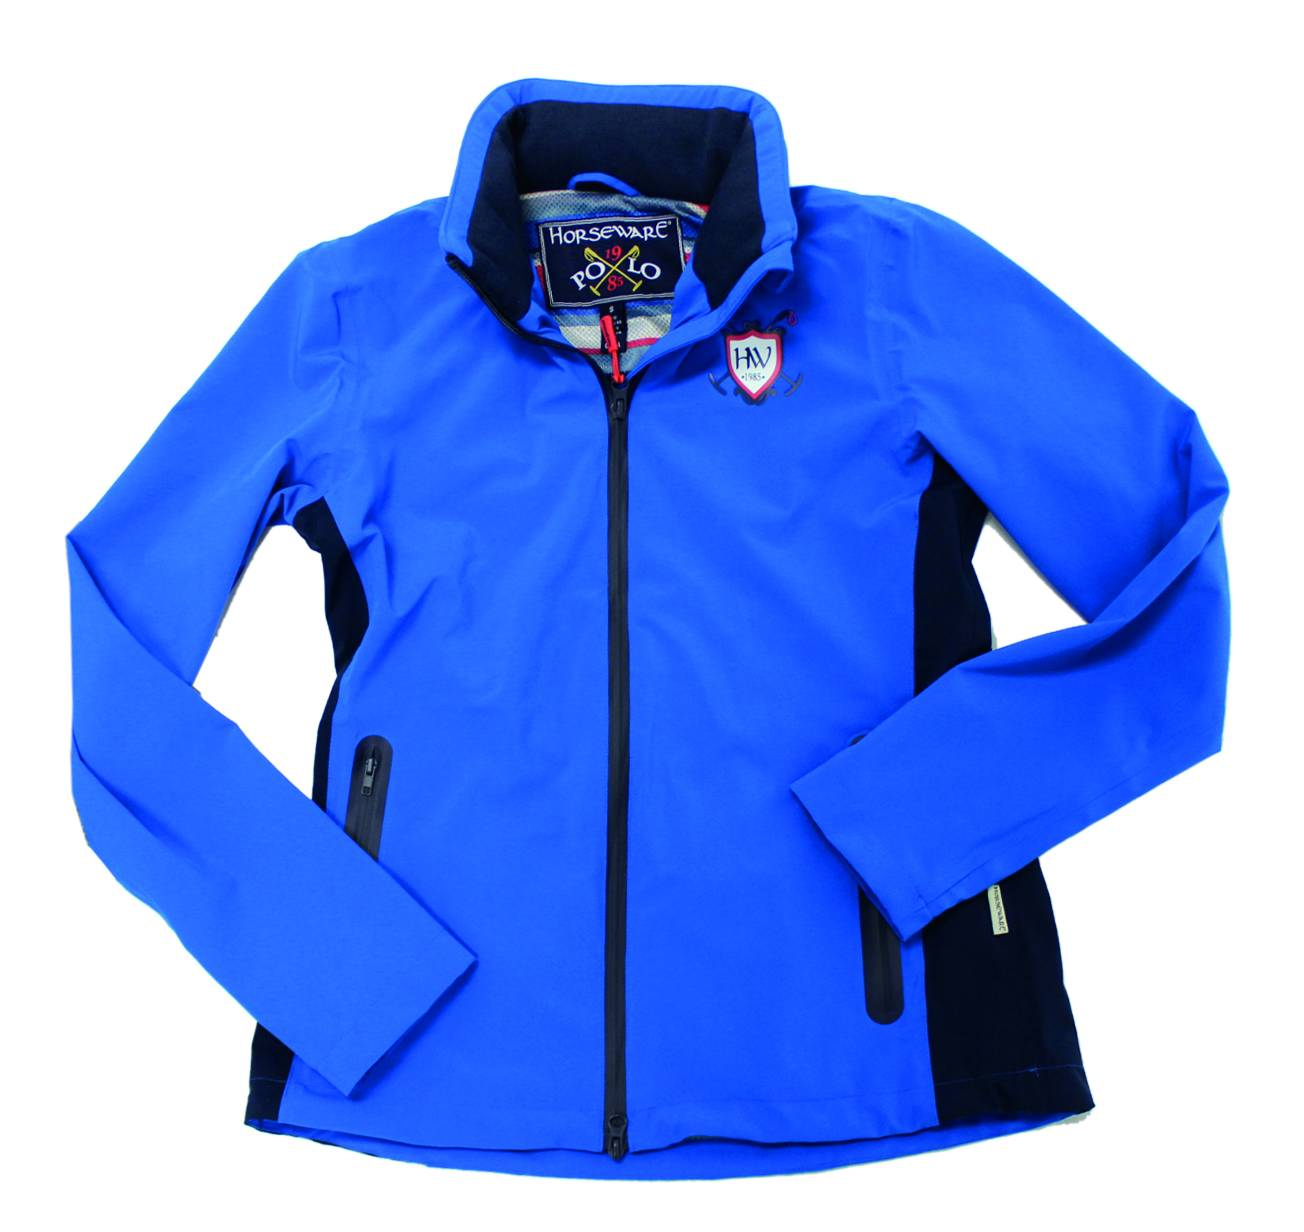 Horseware Cassie Waterproof Softshell - Ladies